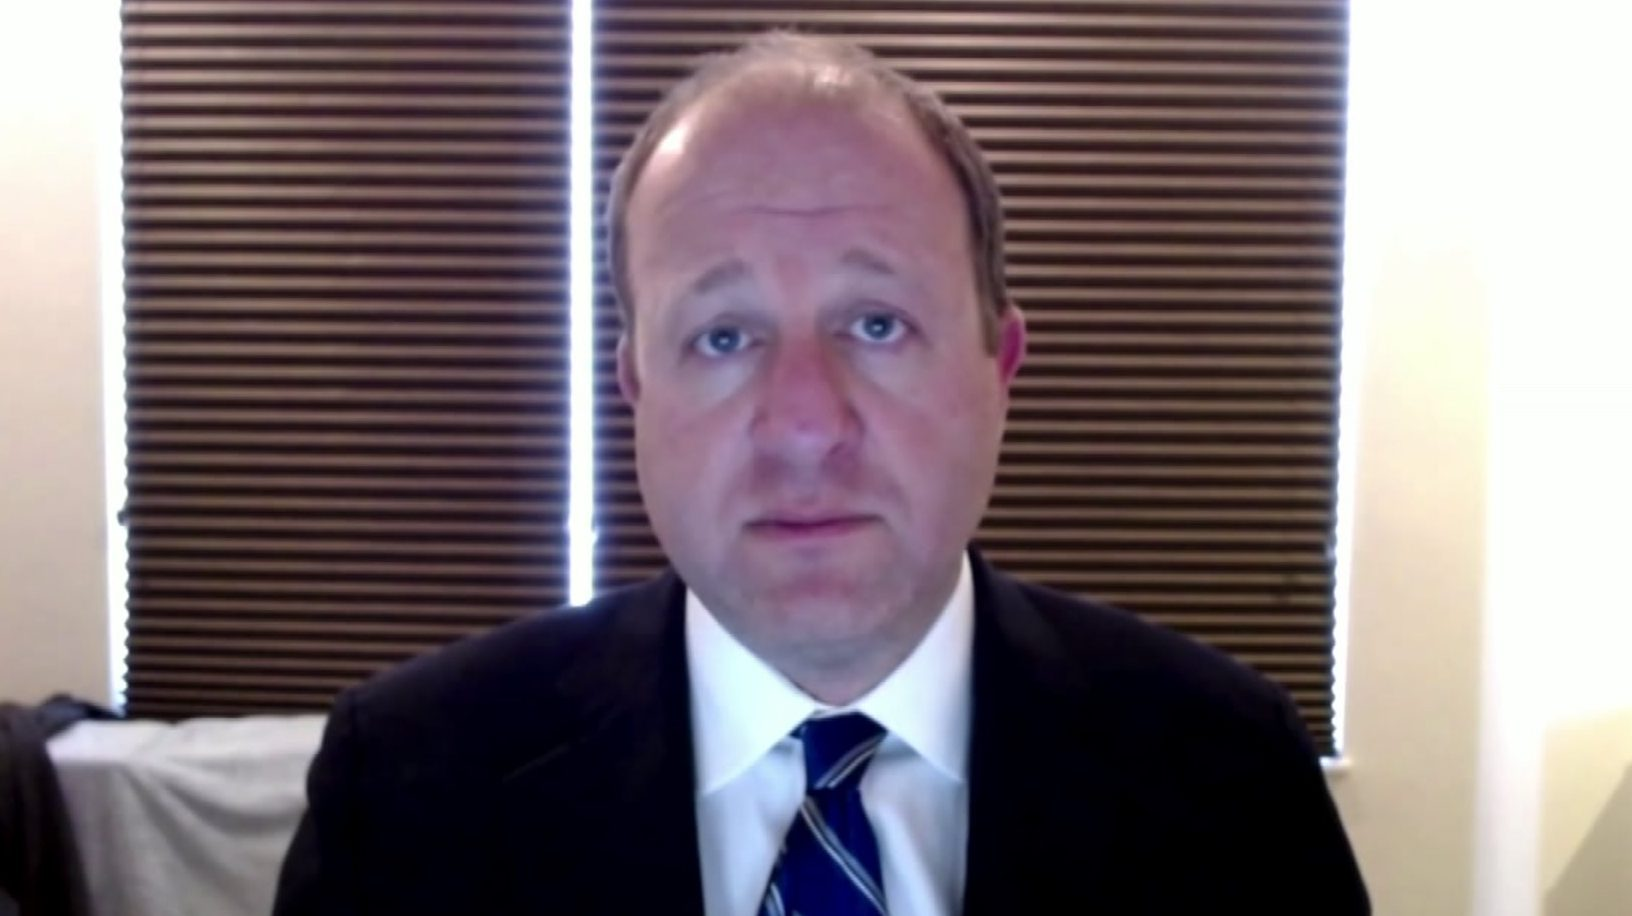 Gov. Jared Polis in an interview over Skype on April 7, 2020.